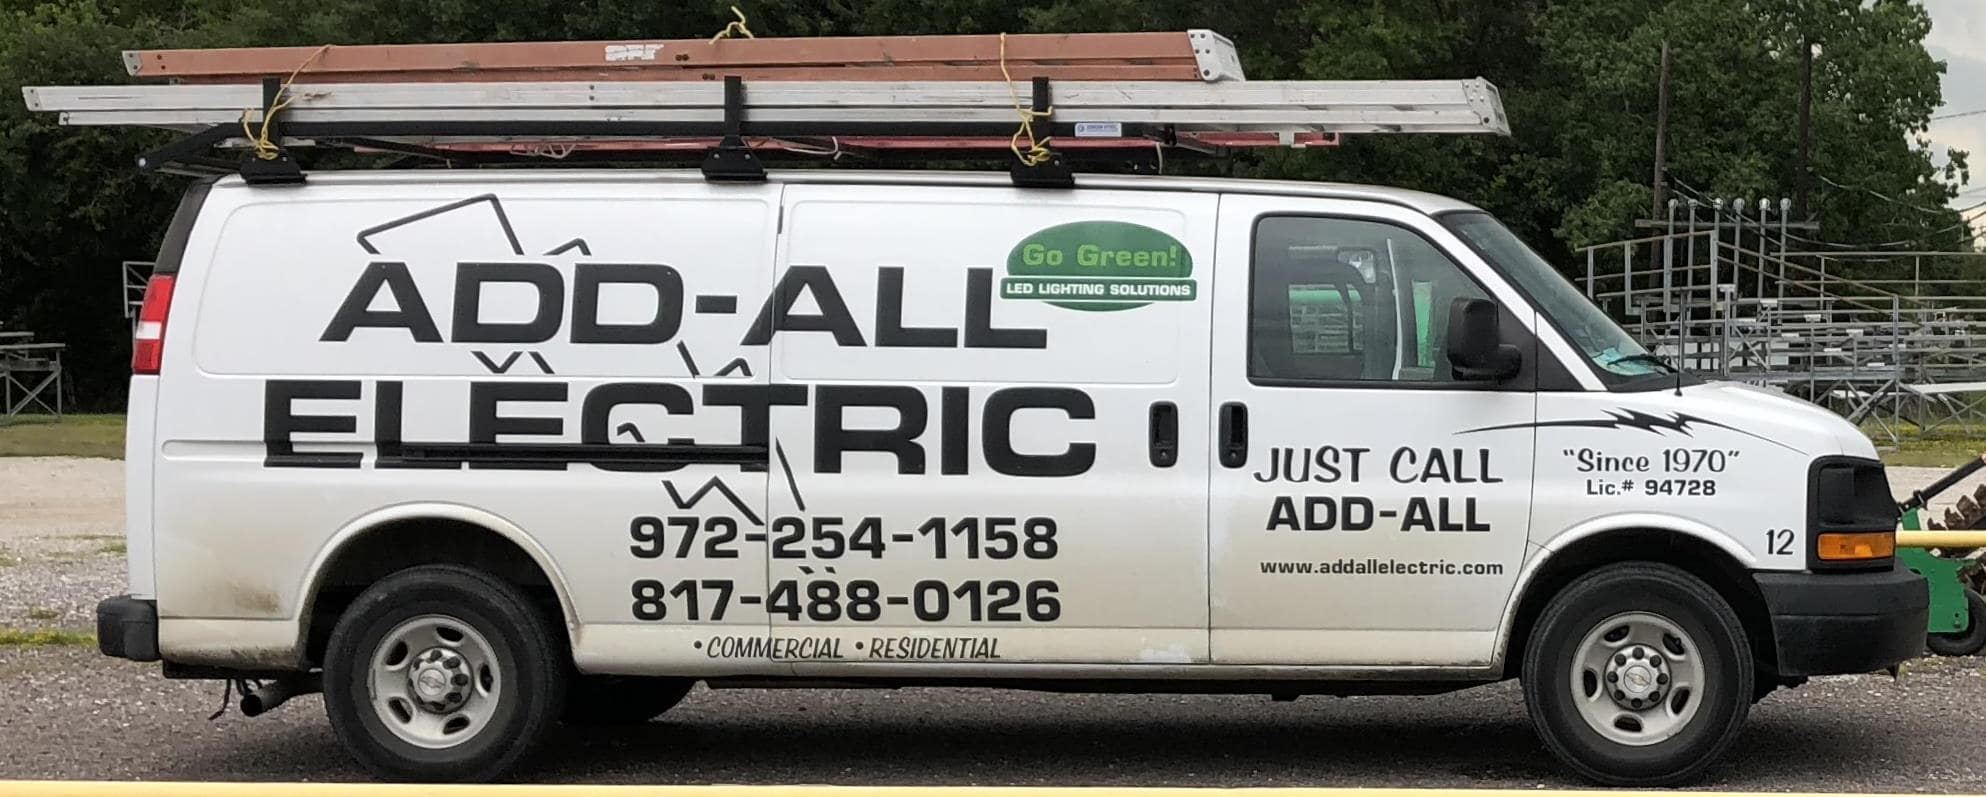 Add-All Electric Service Van